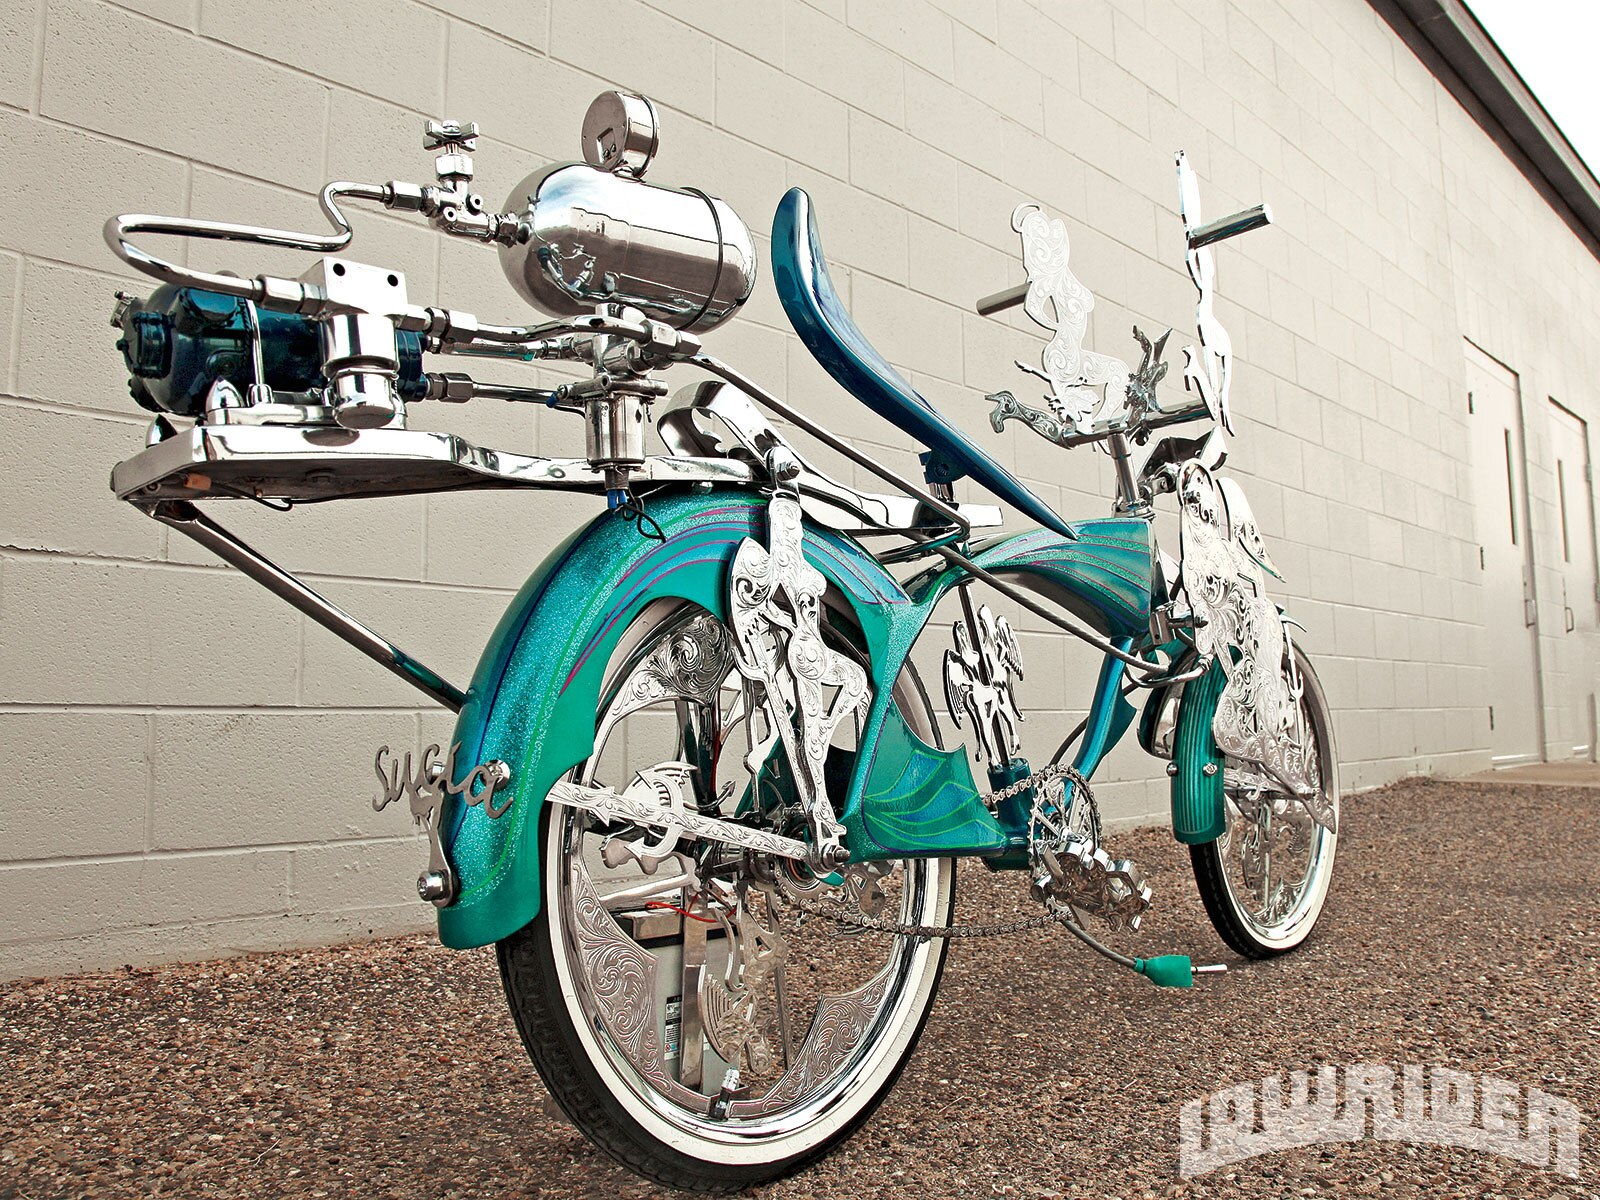 1969-schwinn-bicycle-rear-right-view1